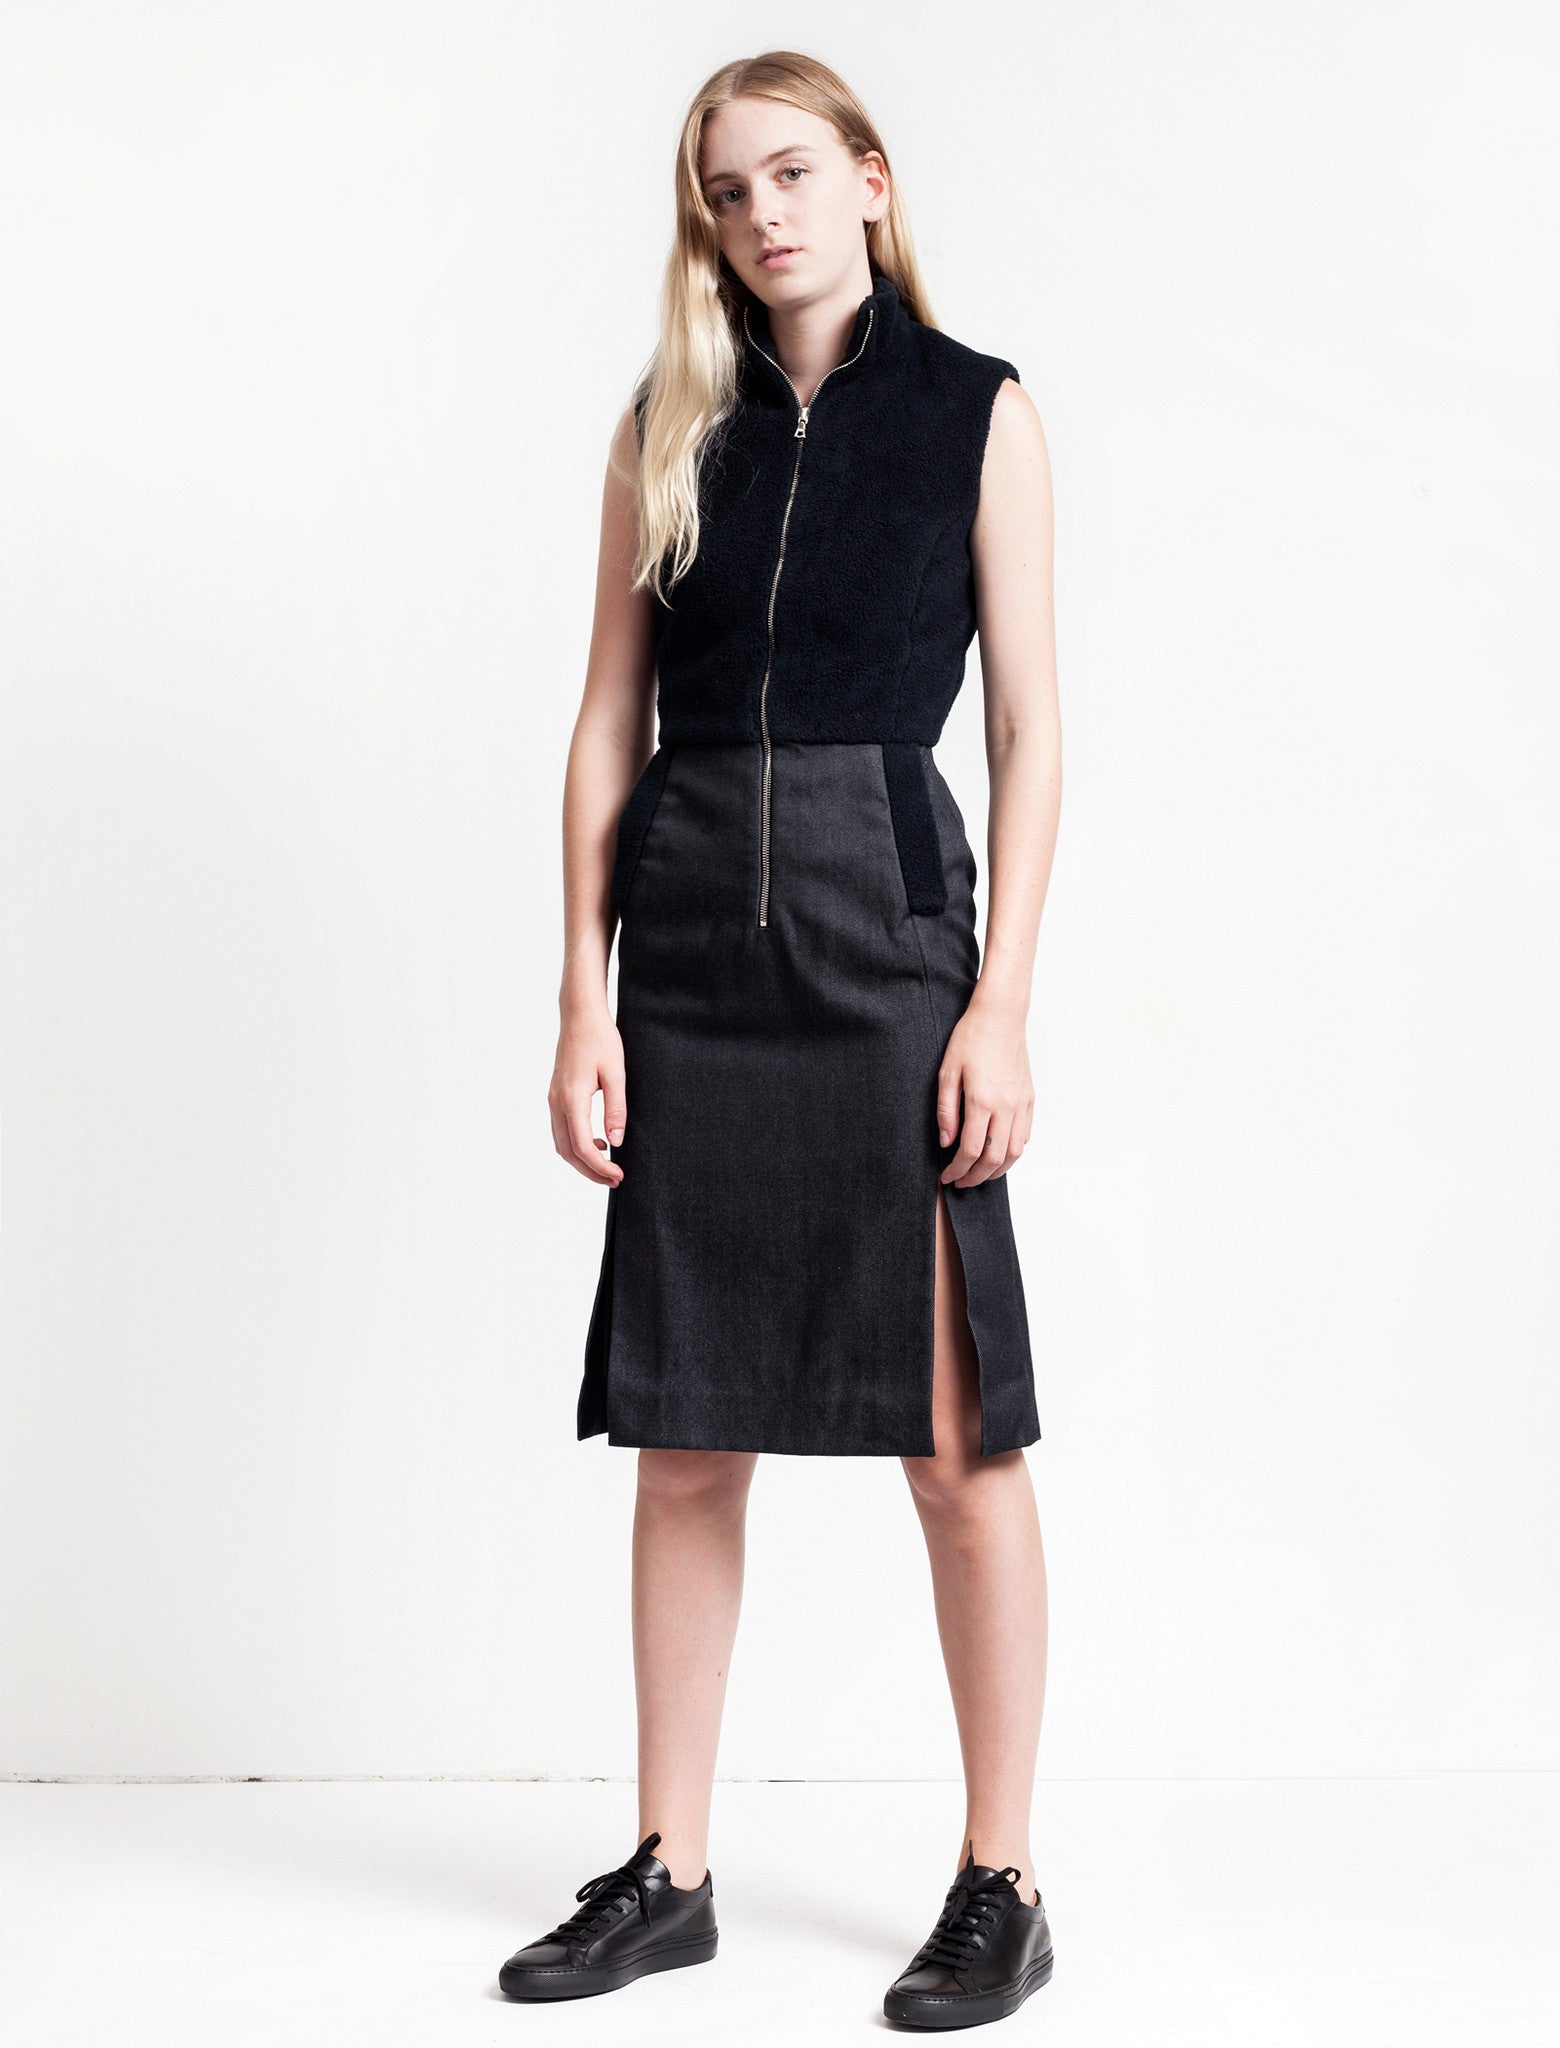 Christopher Raeburn Hybrid Dress